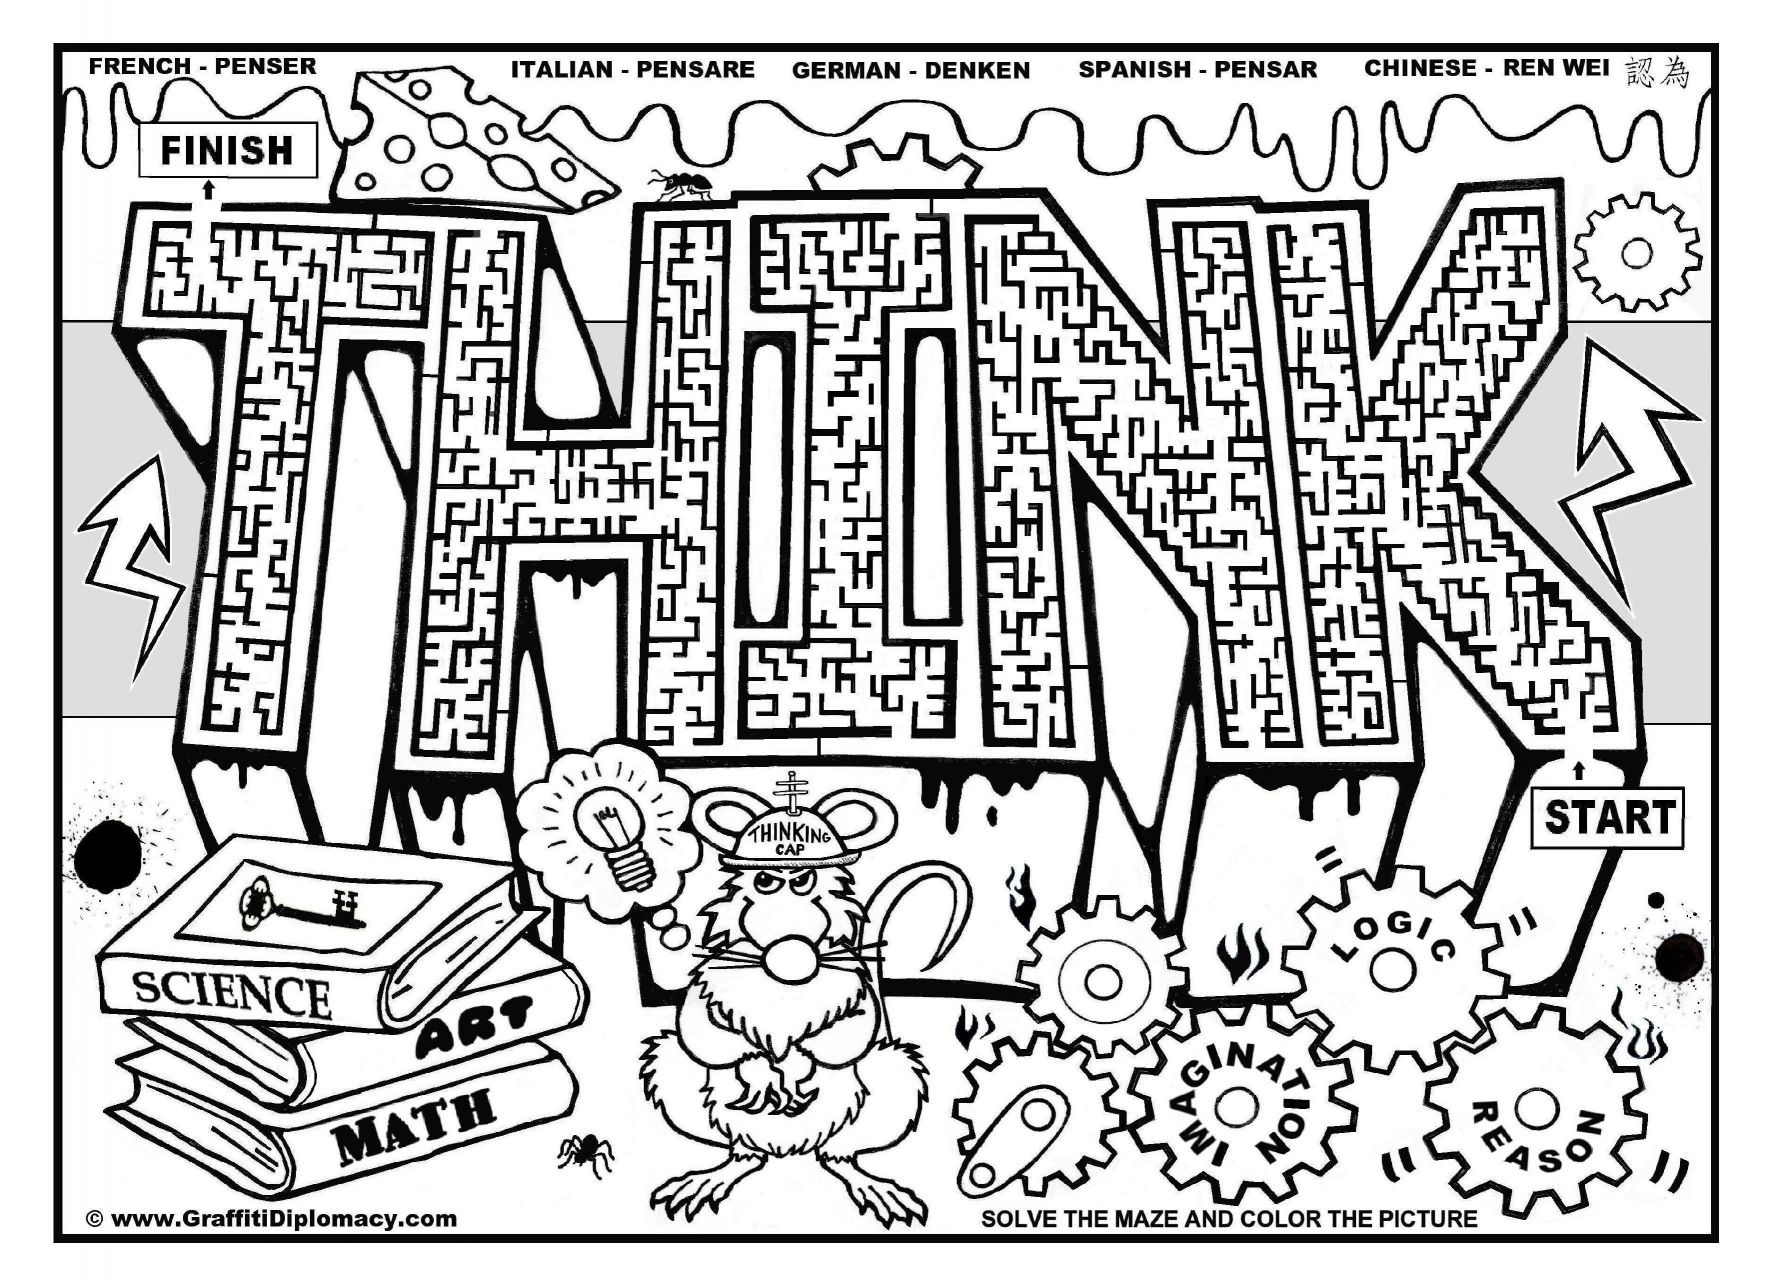 coloring sheet graffiti coloring pages coloring pages for teenagers graffiti coloring home coloring coloring sheet pages graffiti